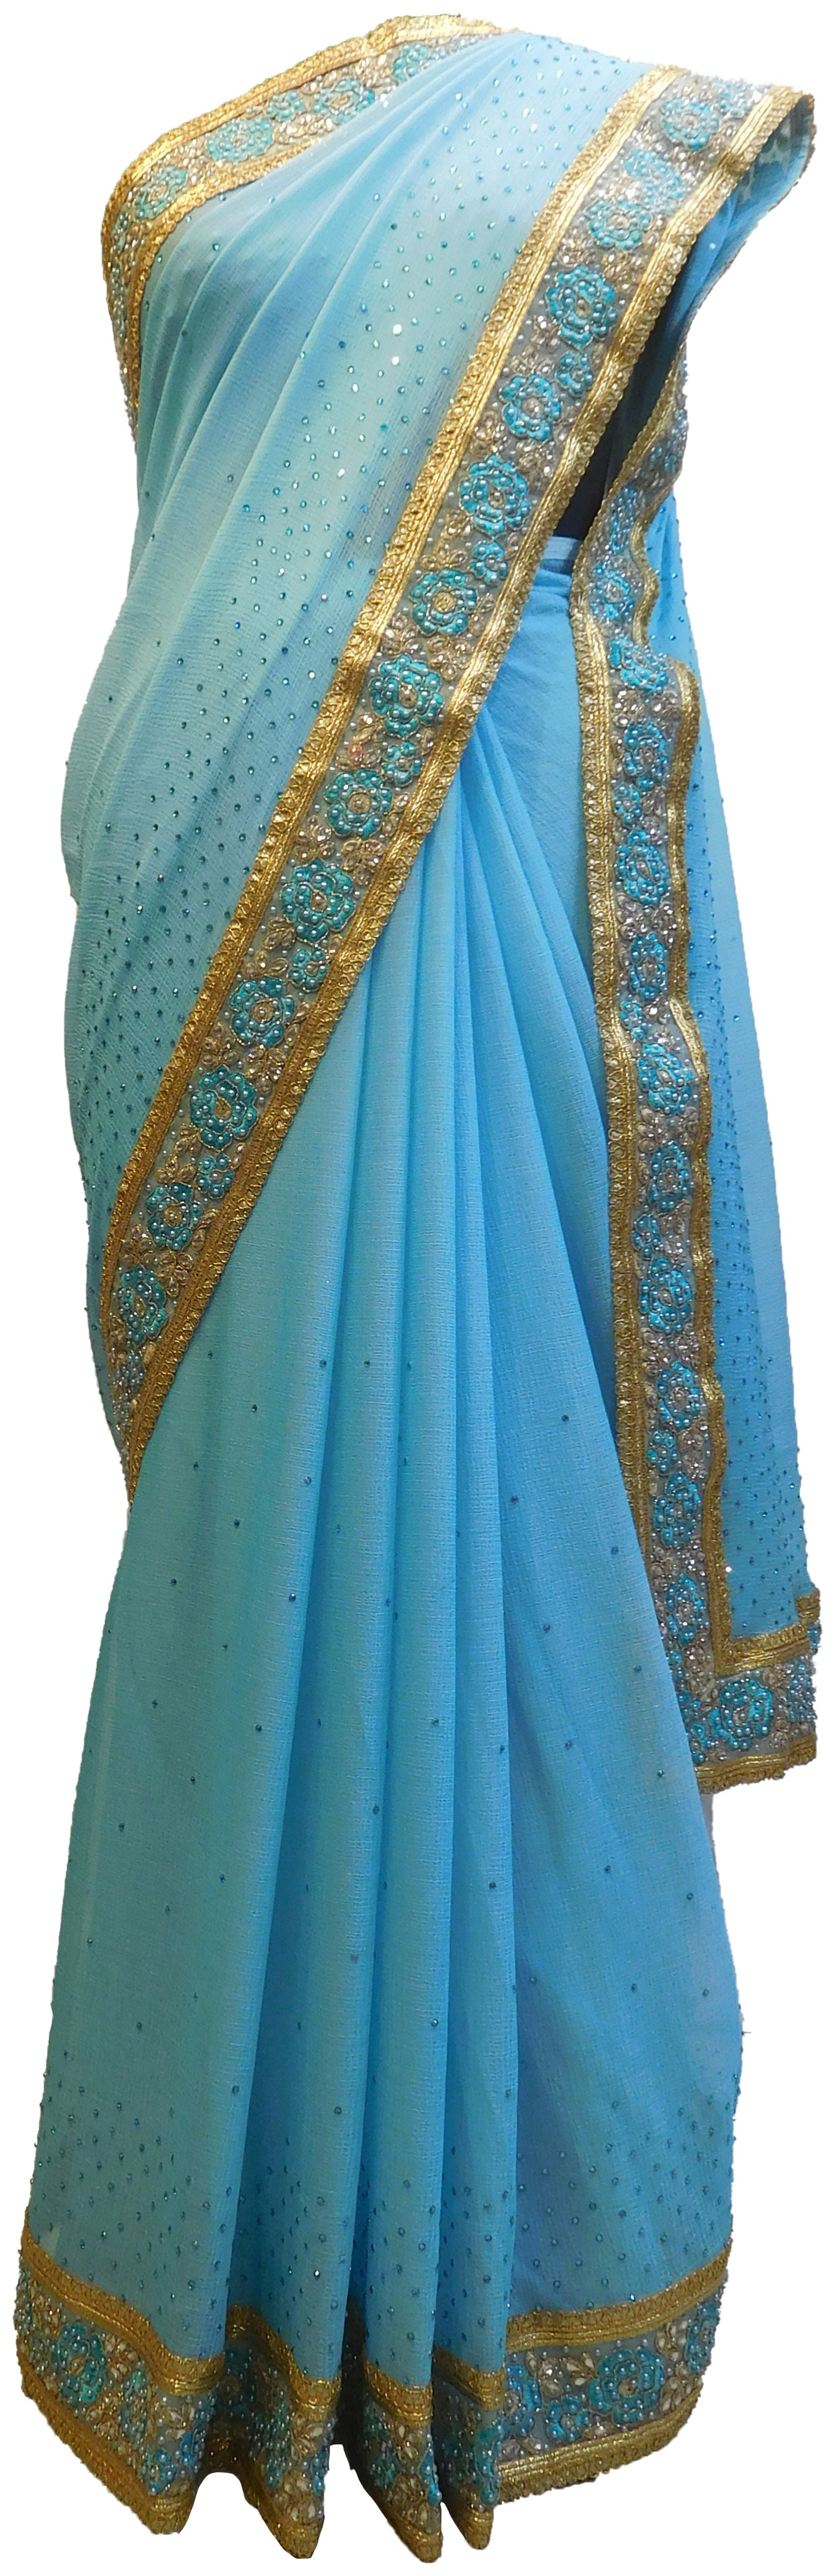 Blue Designer Wedding Partywear Georgette Hand Embroidery Thread Stone Zari Work Kolkata Saree Sari E434